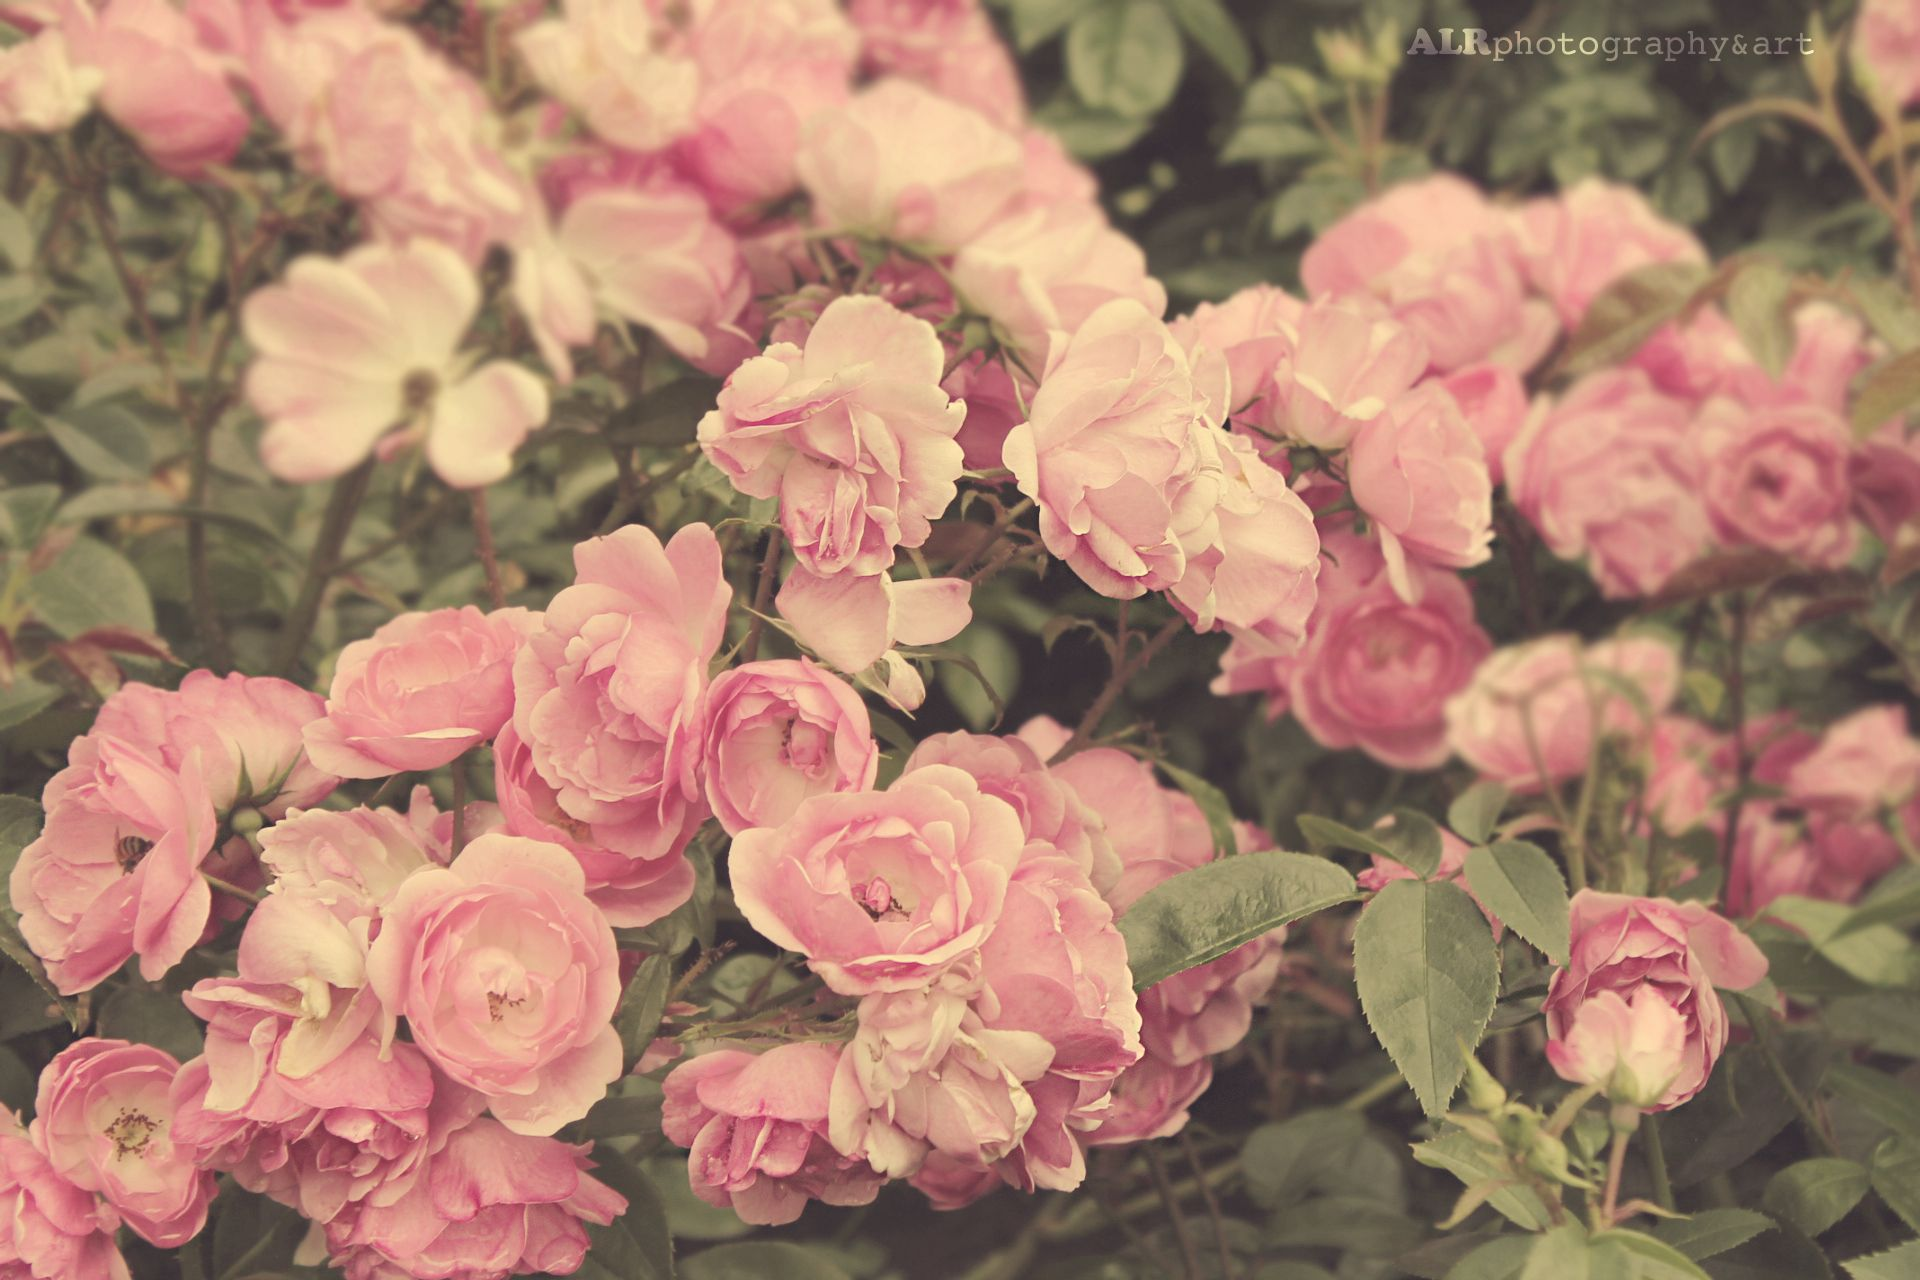 roses tumblr - Google Search | Flowers & Landscapes ...